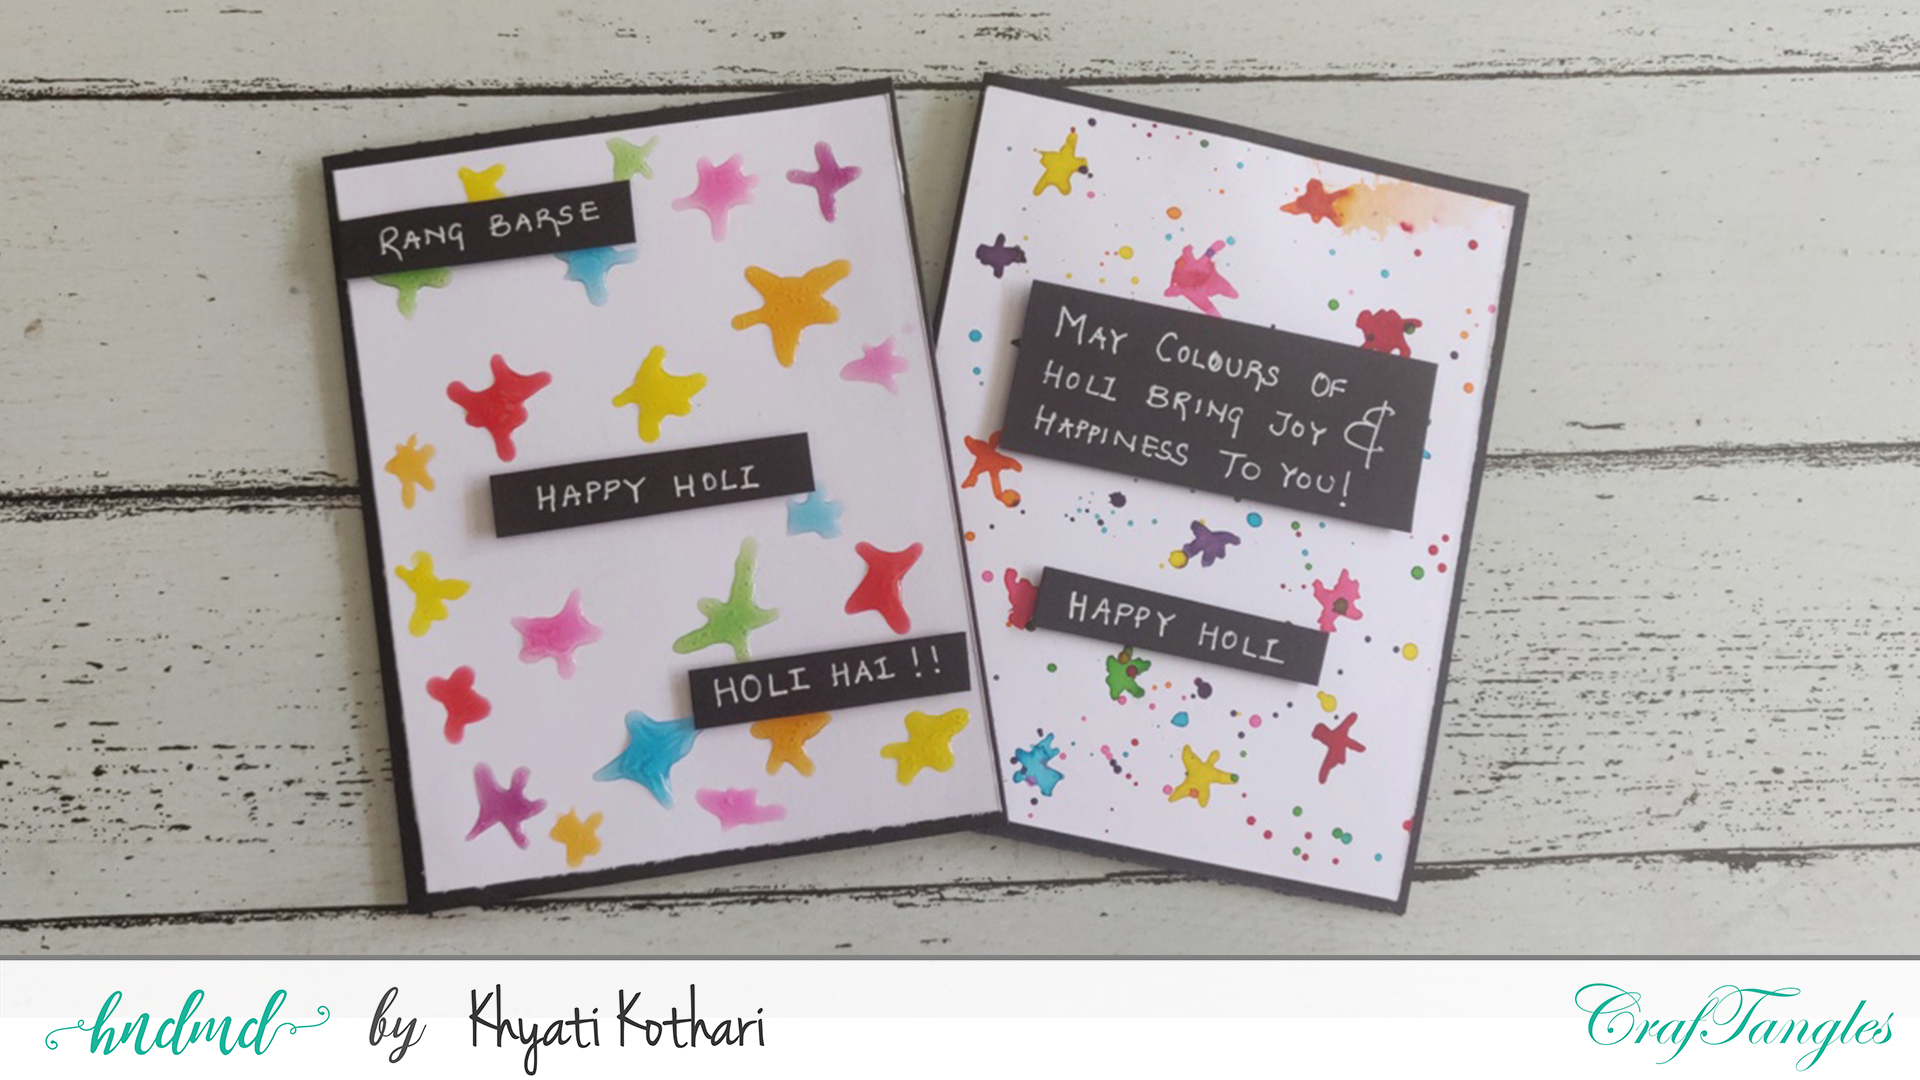 How to make easy cards using basic supplies 6